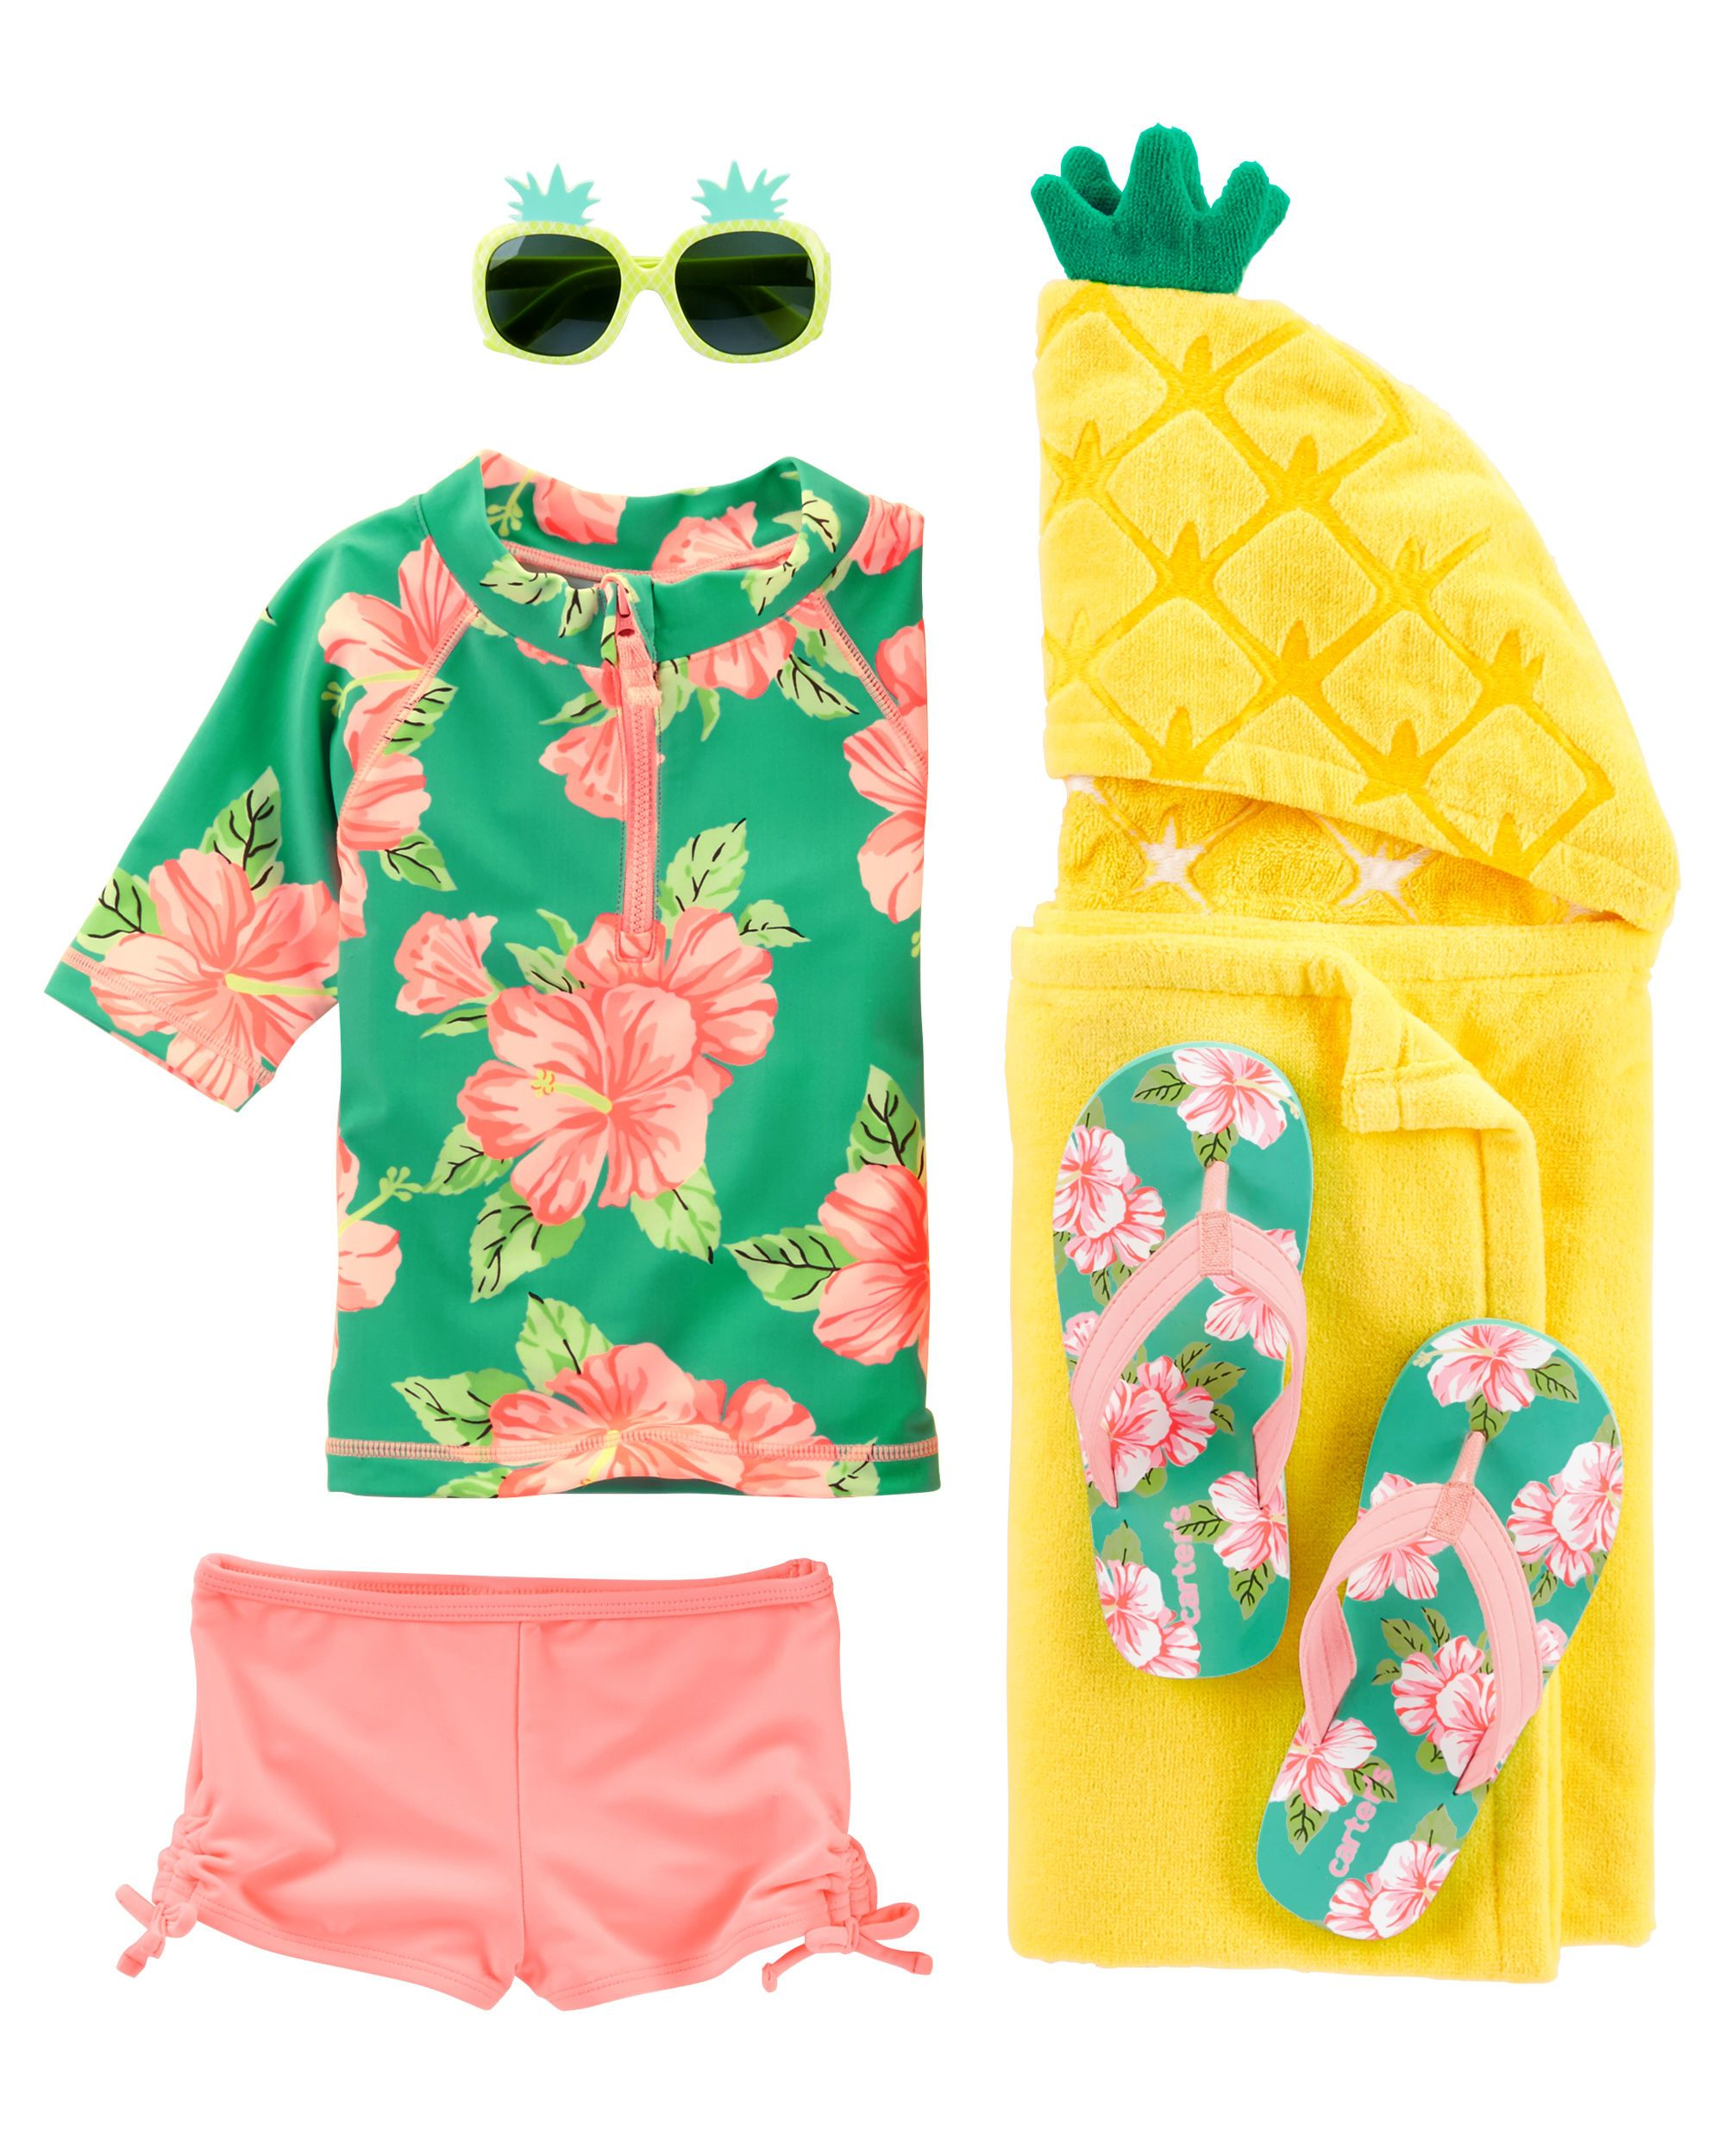 Pin by Miona Sinvilcard on children clothes and shoes idea